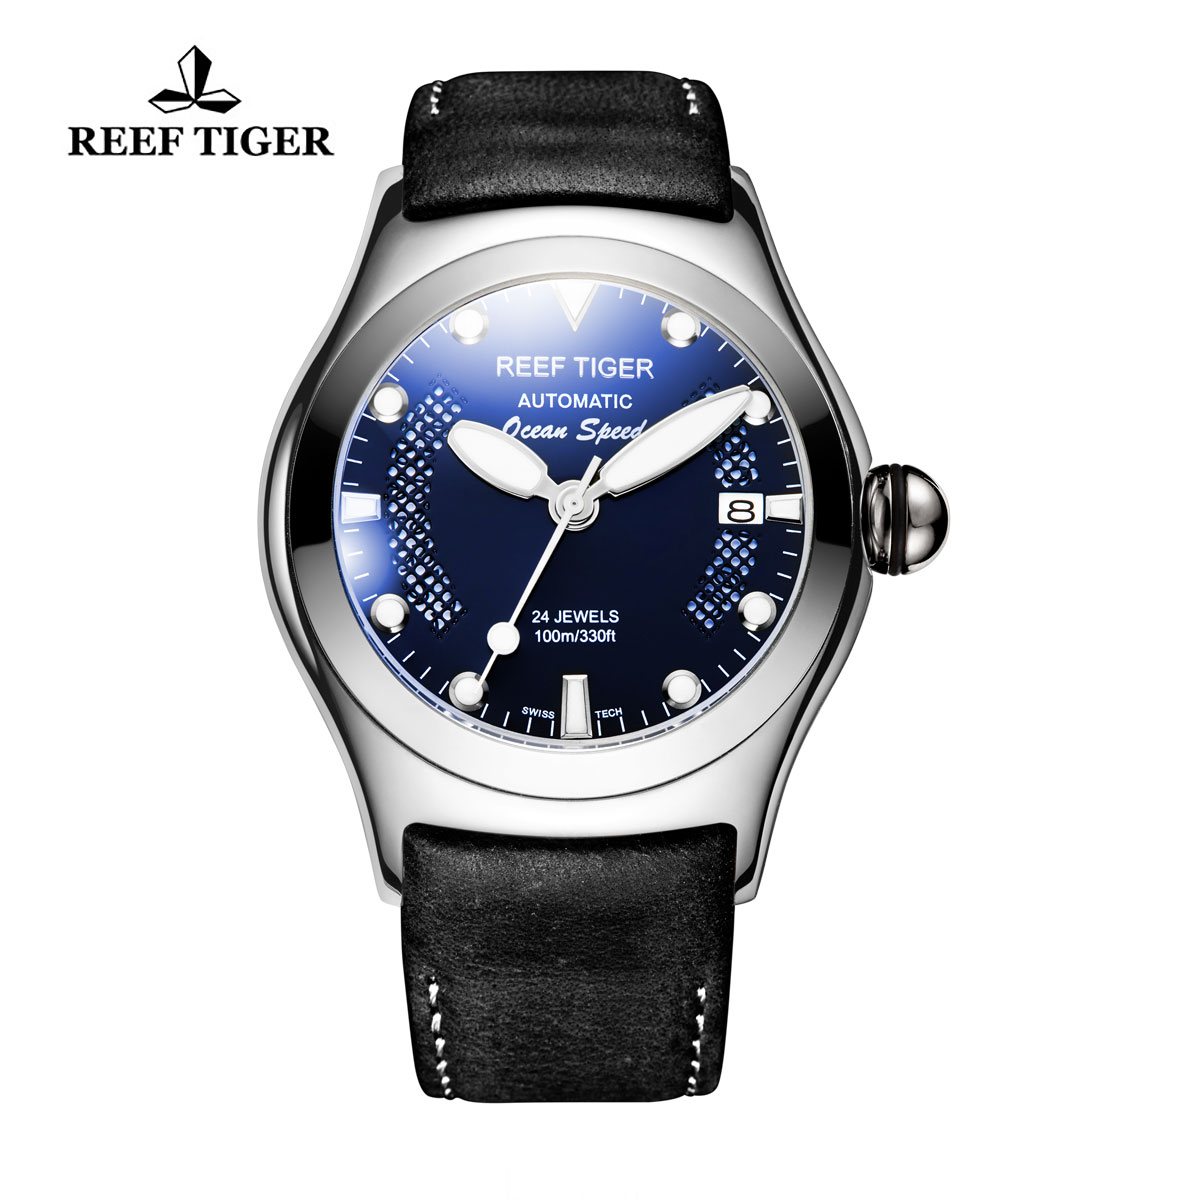 Reef Tiger Ocean Speed Sport Watches Automatic Steel Case Black Leather Blue Dial Watch RGA704-YLBW